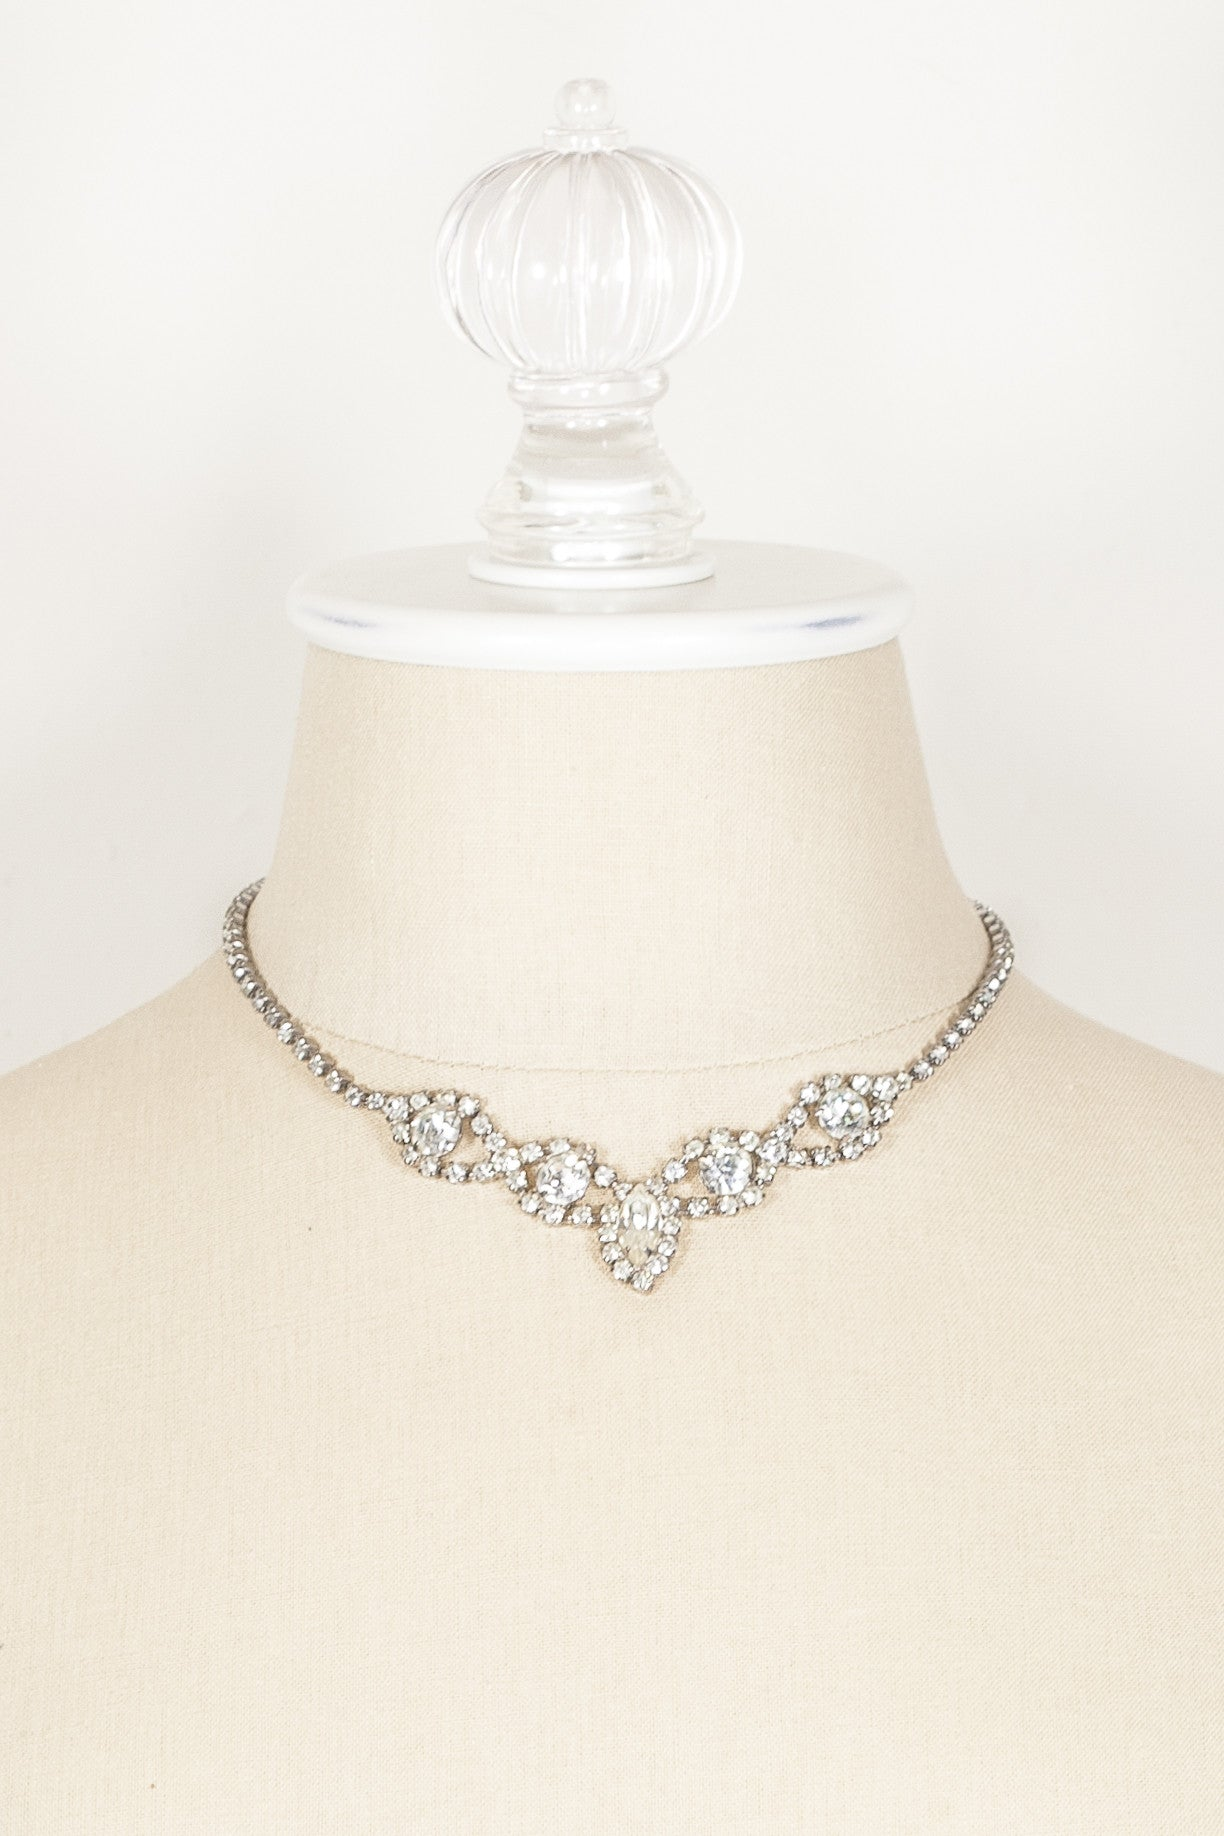 50's__Vintage__Rhinestone Cluster Wedding Necklace